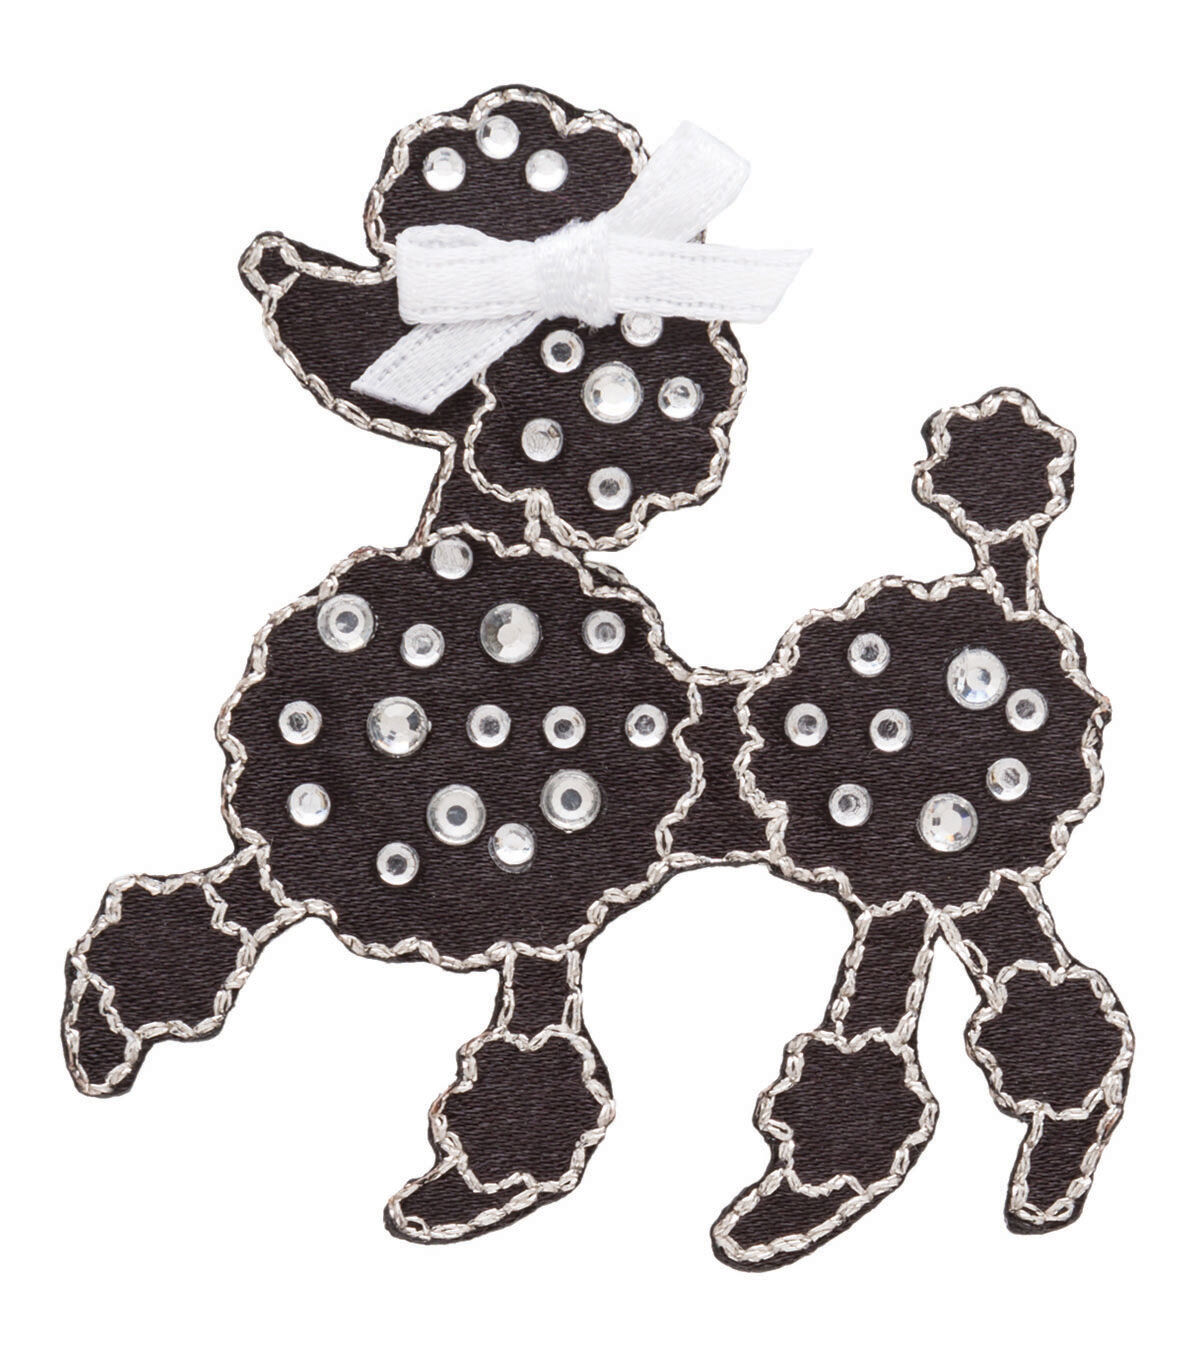 How to Dress for a 50s Sock Hop Simplicity Iron - On Applique - Jeweled Black Poodle WRhinestones $4.49 AT vintagedancer.com